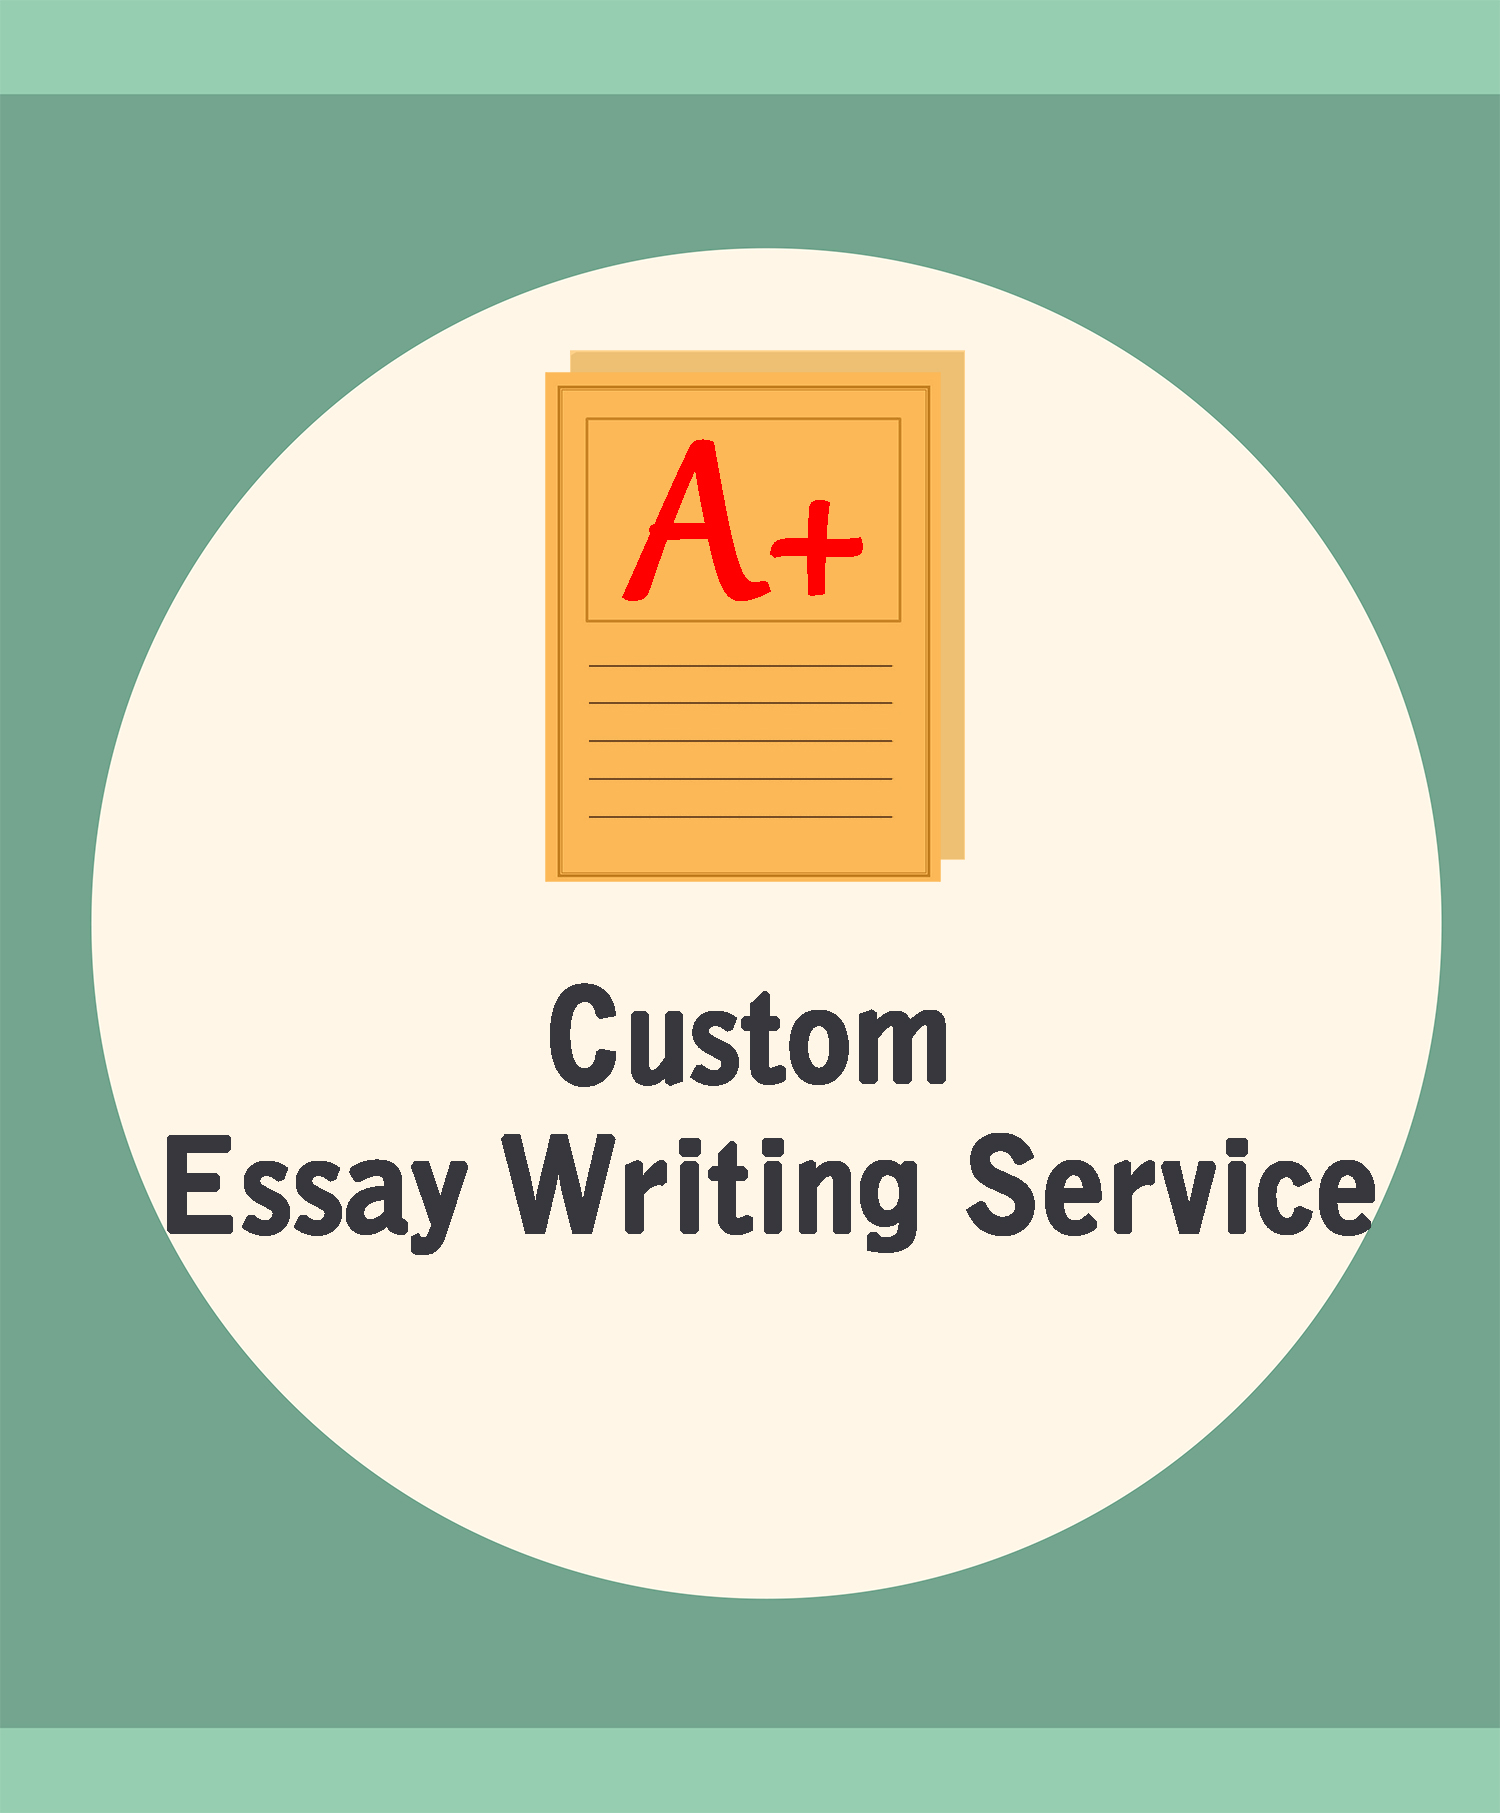 Software Engineering essay writing custom